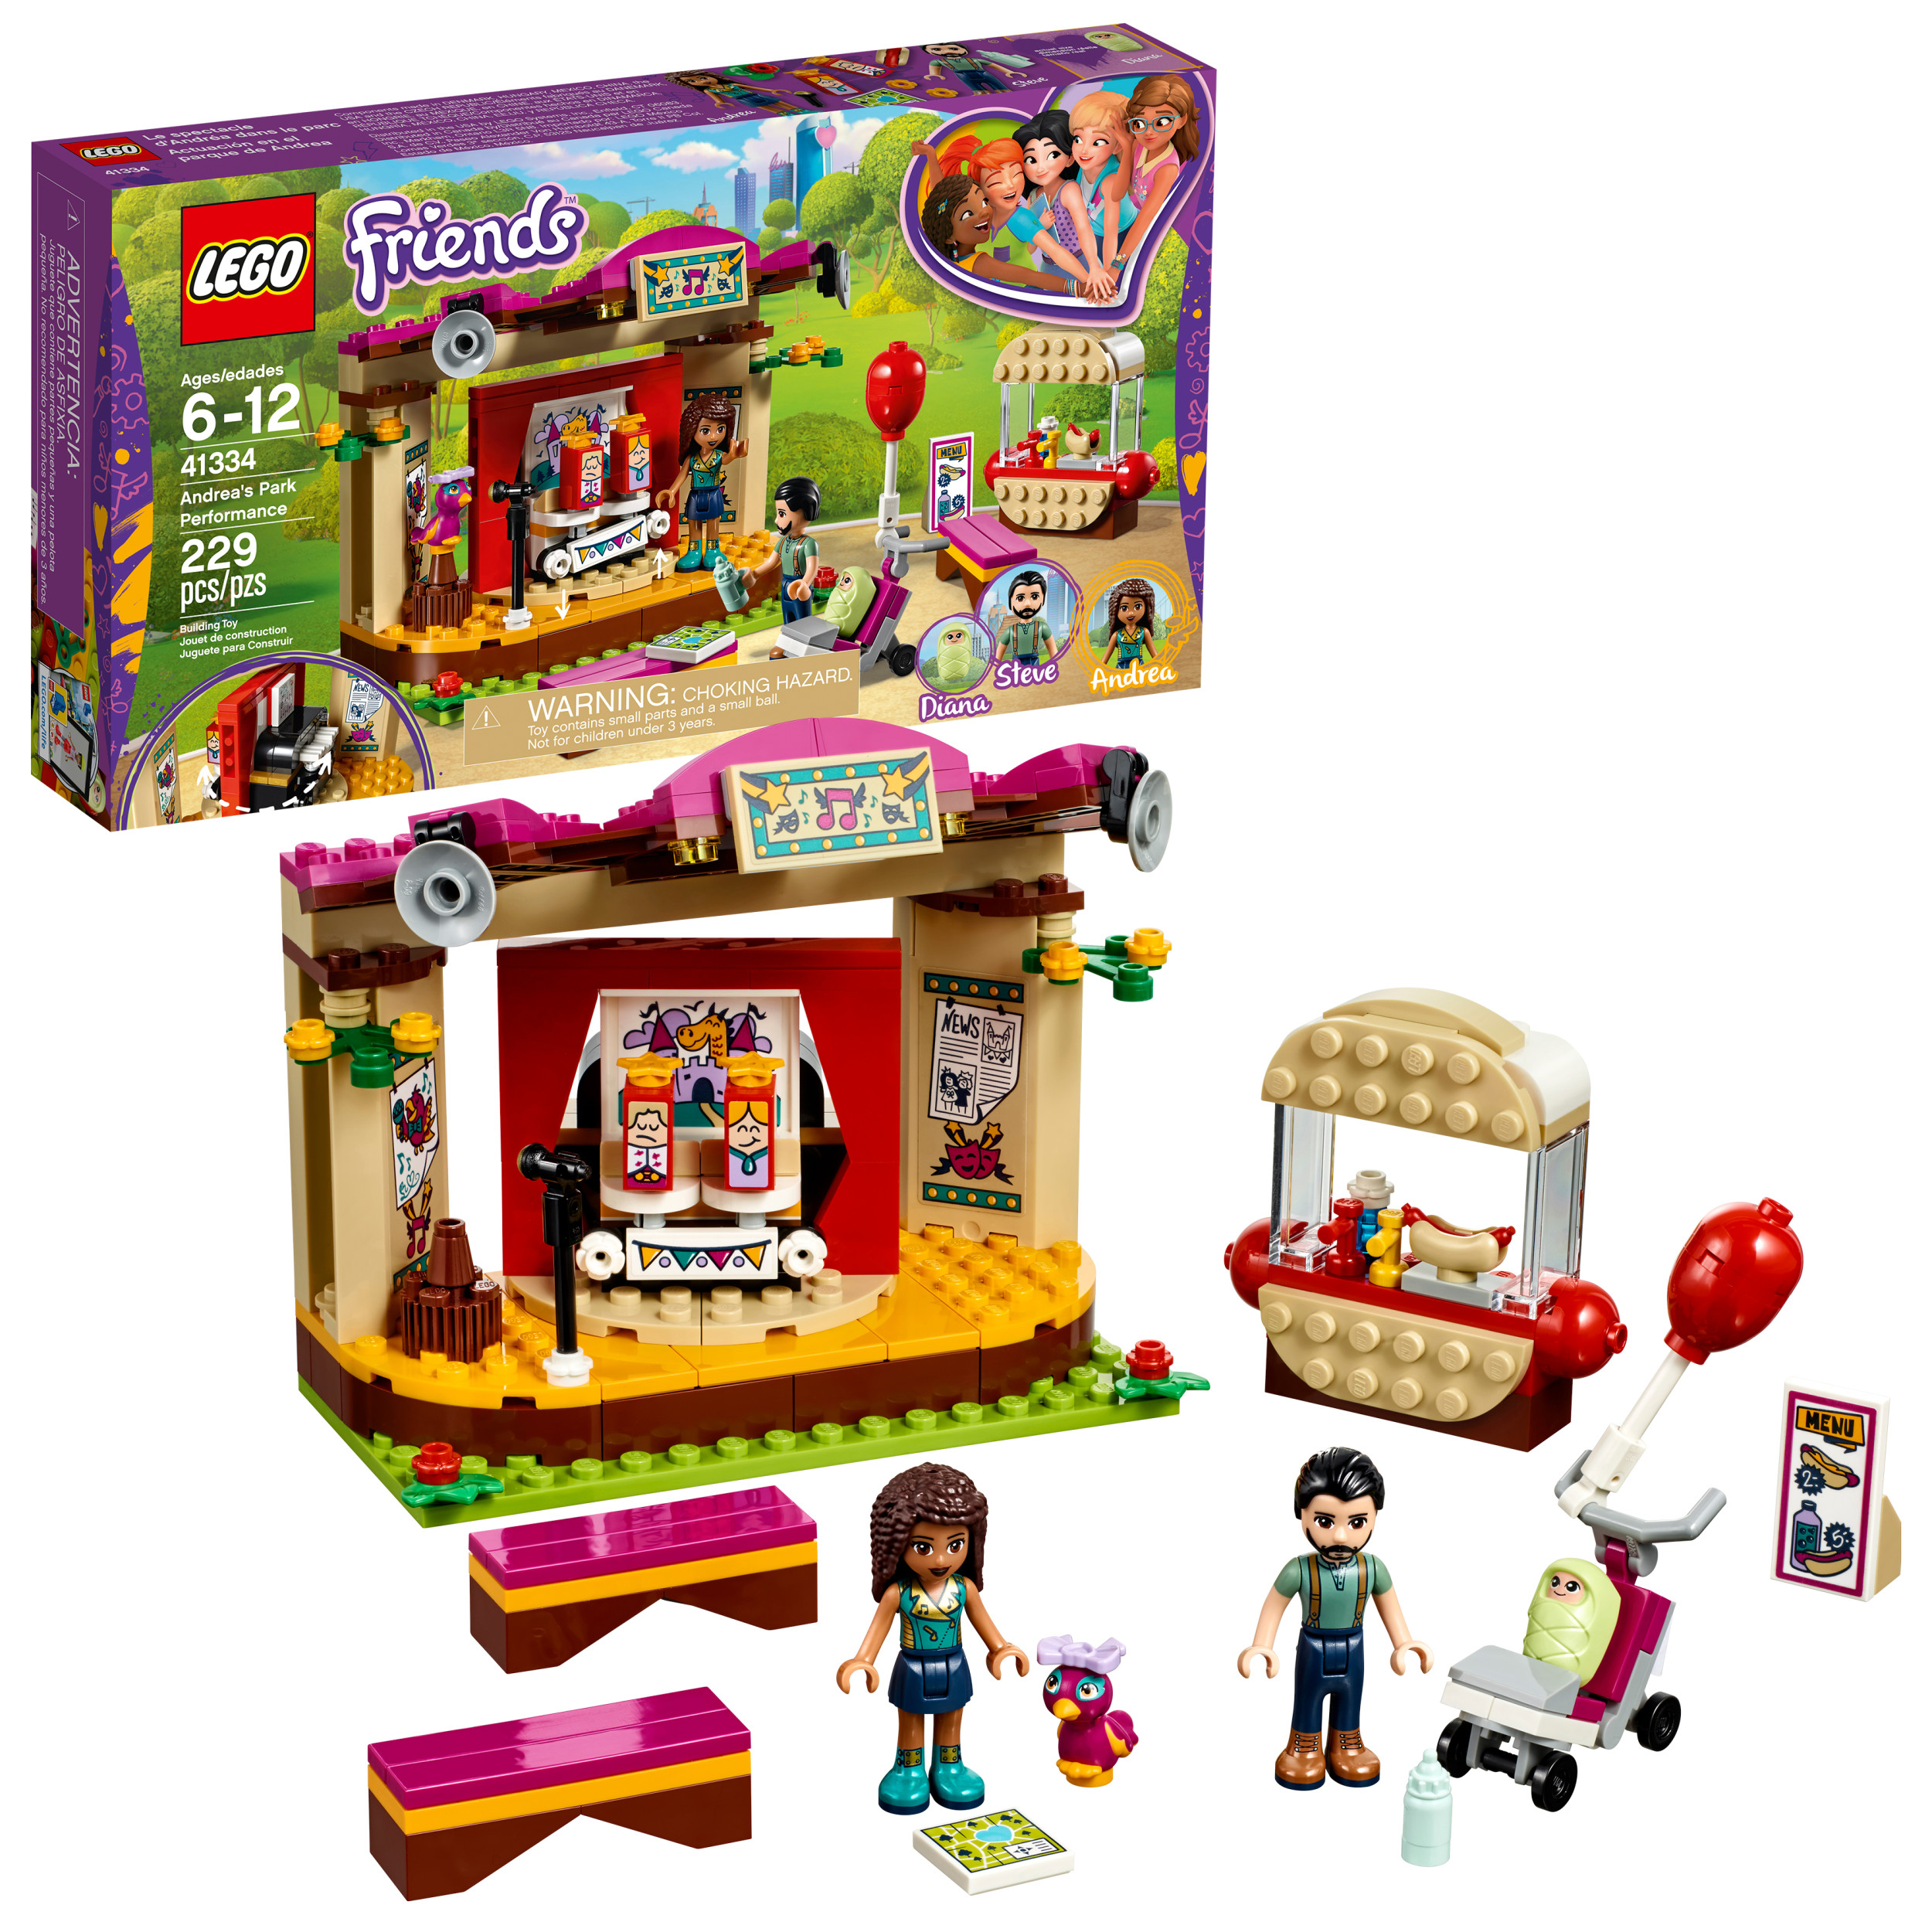 LEGO Friends Andrea's Park Performance 41334 (229 Pieces)